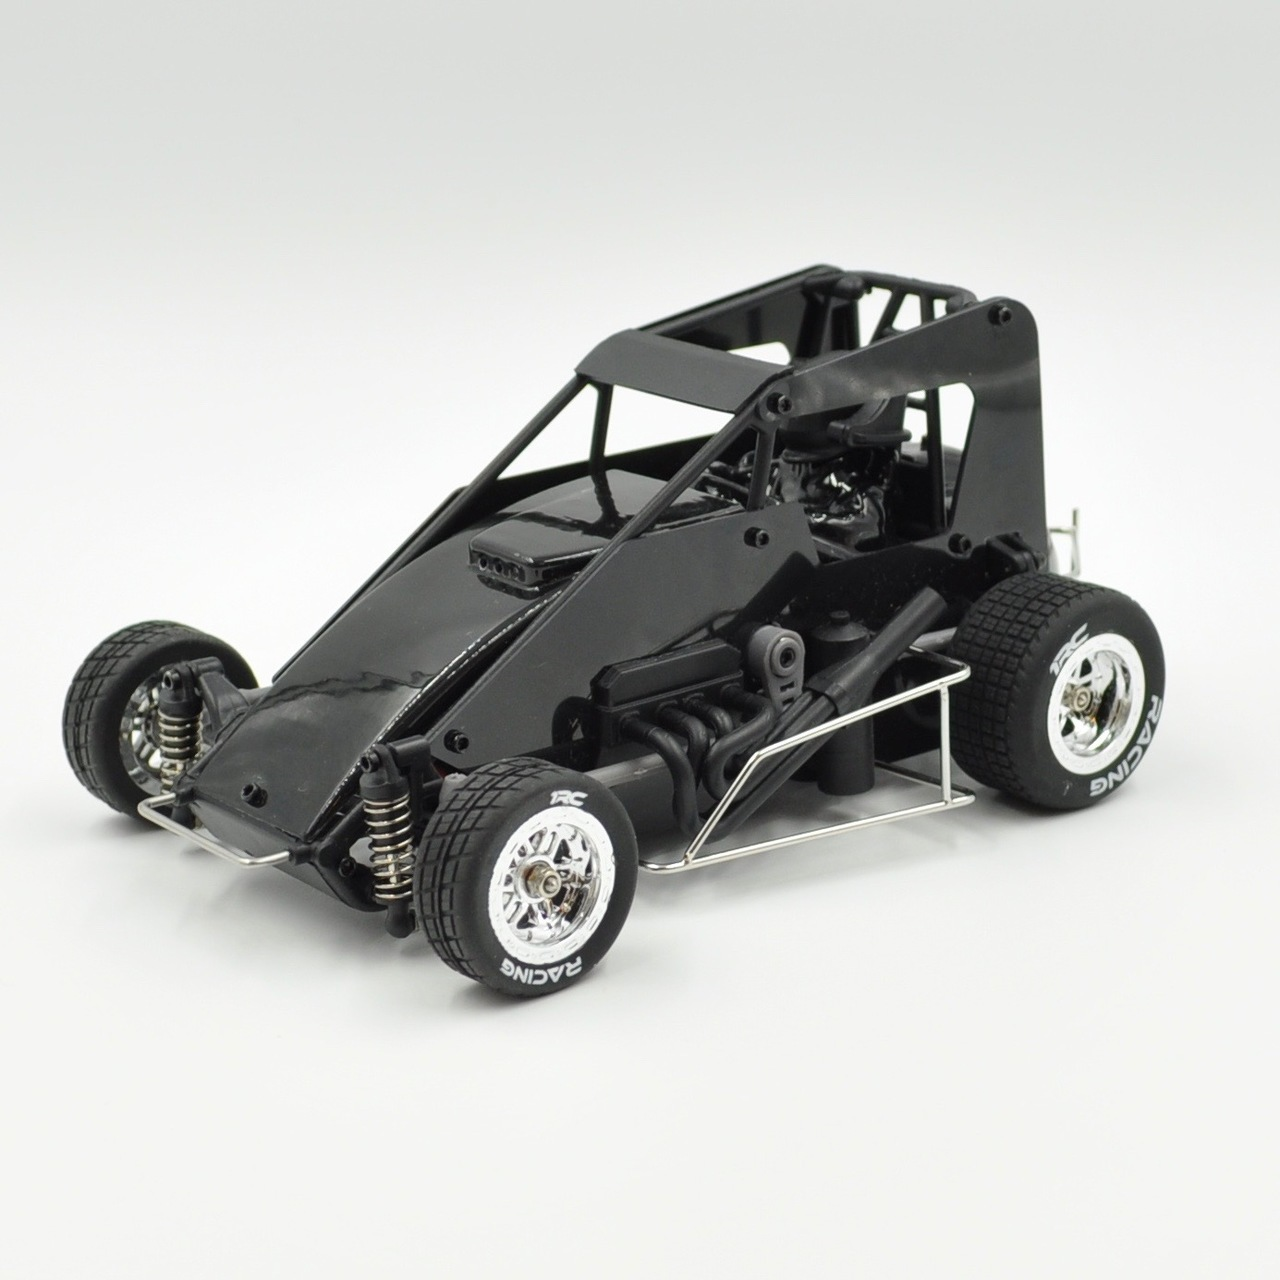 Hit the Track for Less: 1RC Racing's 1/18-scale Midget 1.0 is now $139.99